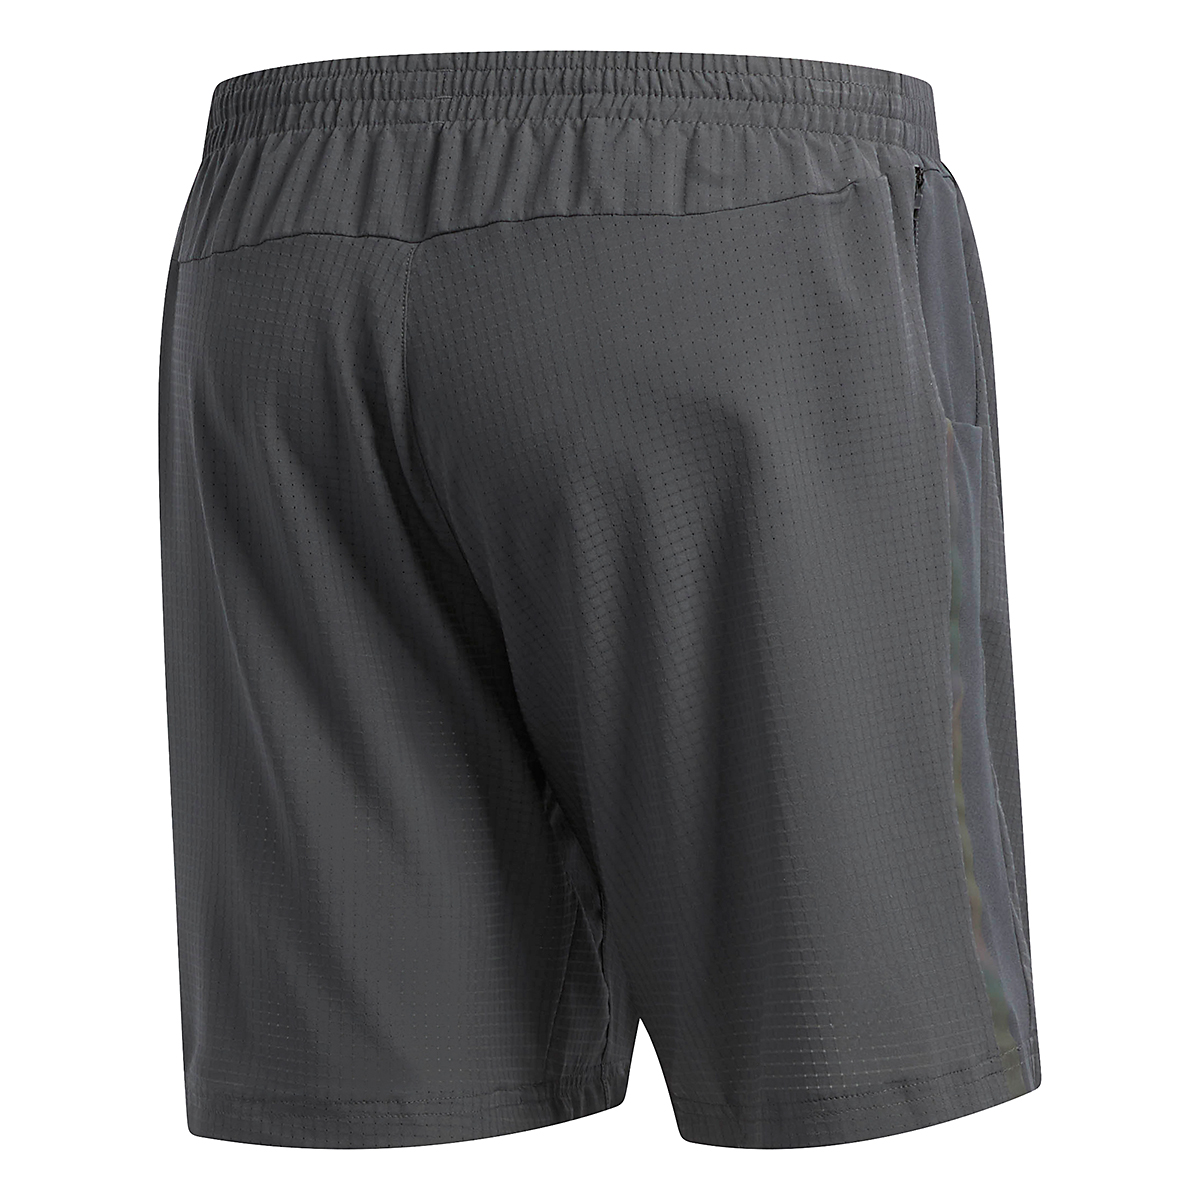 Men's Adidas Saturday Shorts - Color: Grey - Size: S, Grey, large, image 4